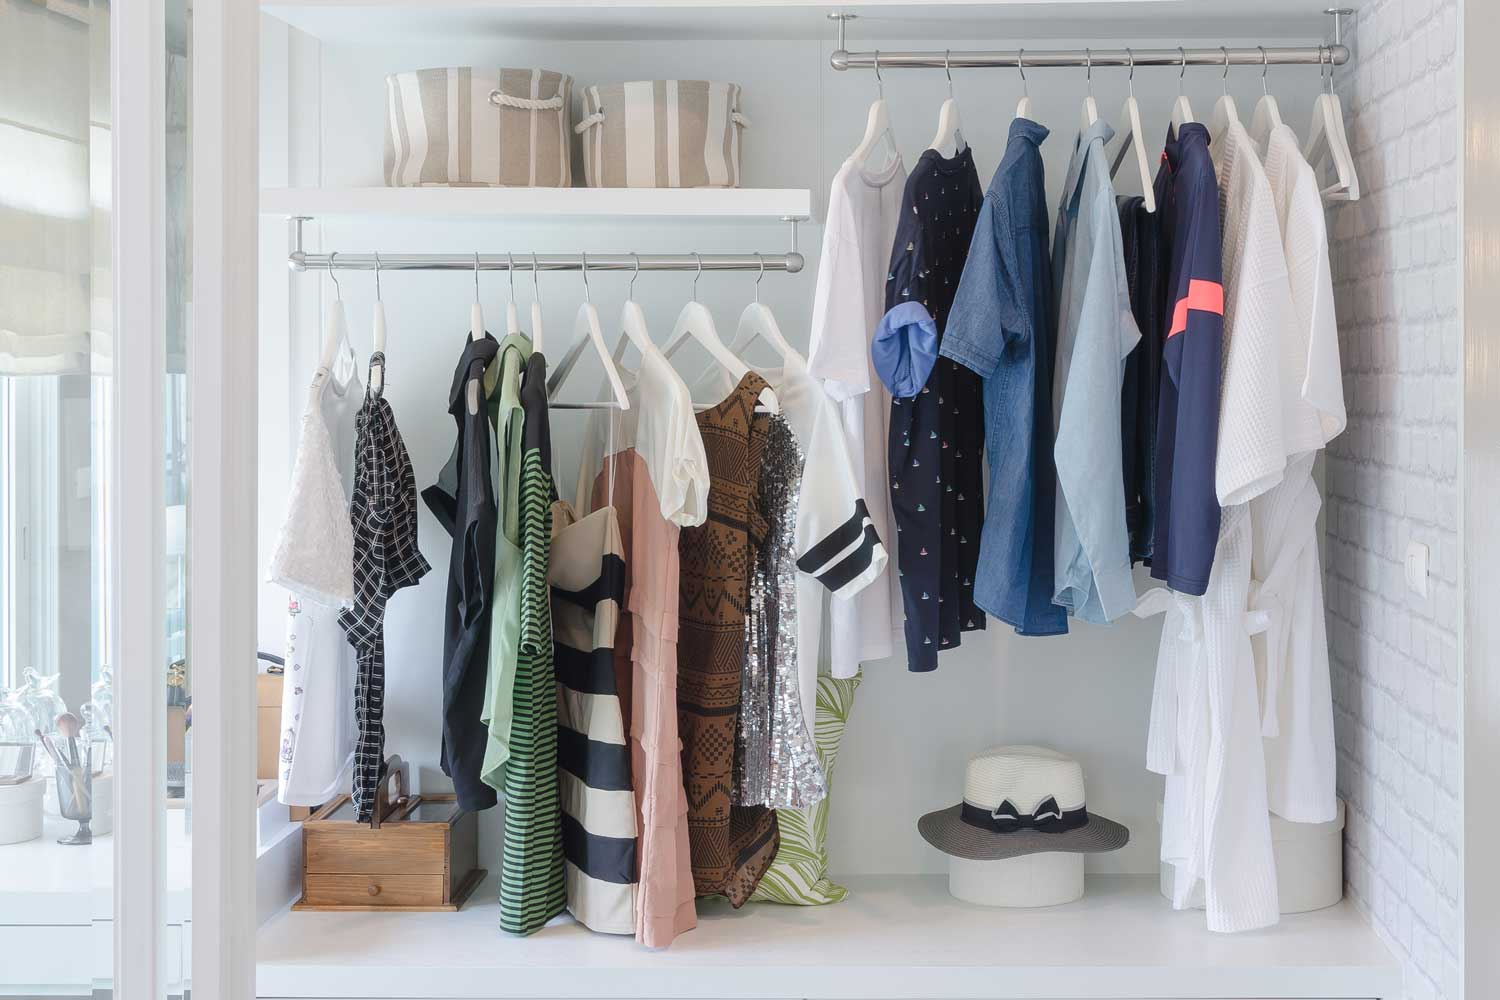 How To Prevent Mould Growing In Your Wardrobe And On Your Clothes